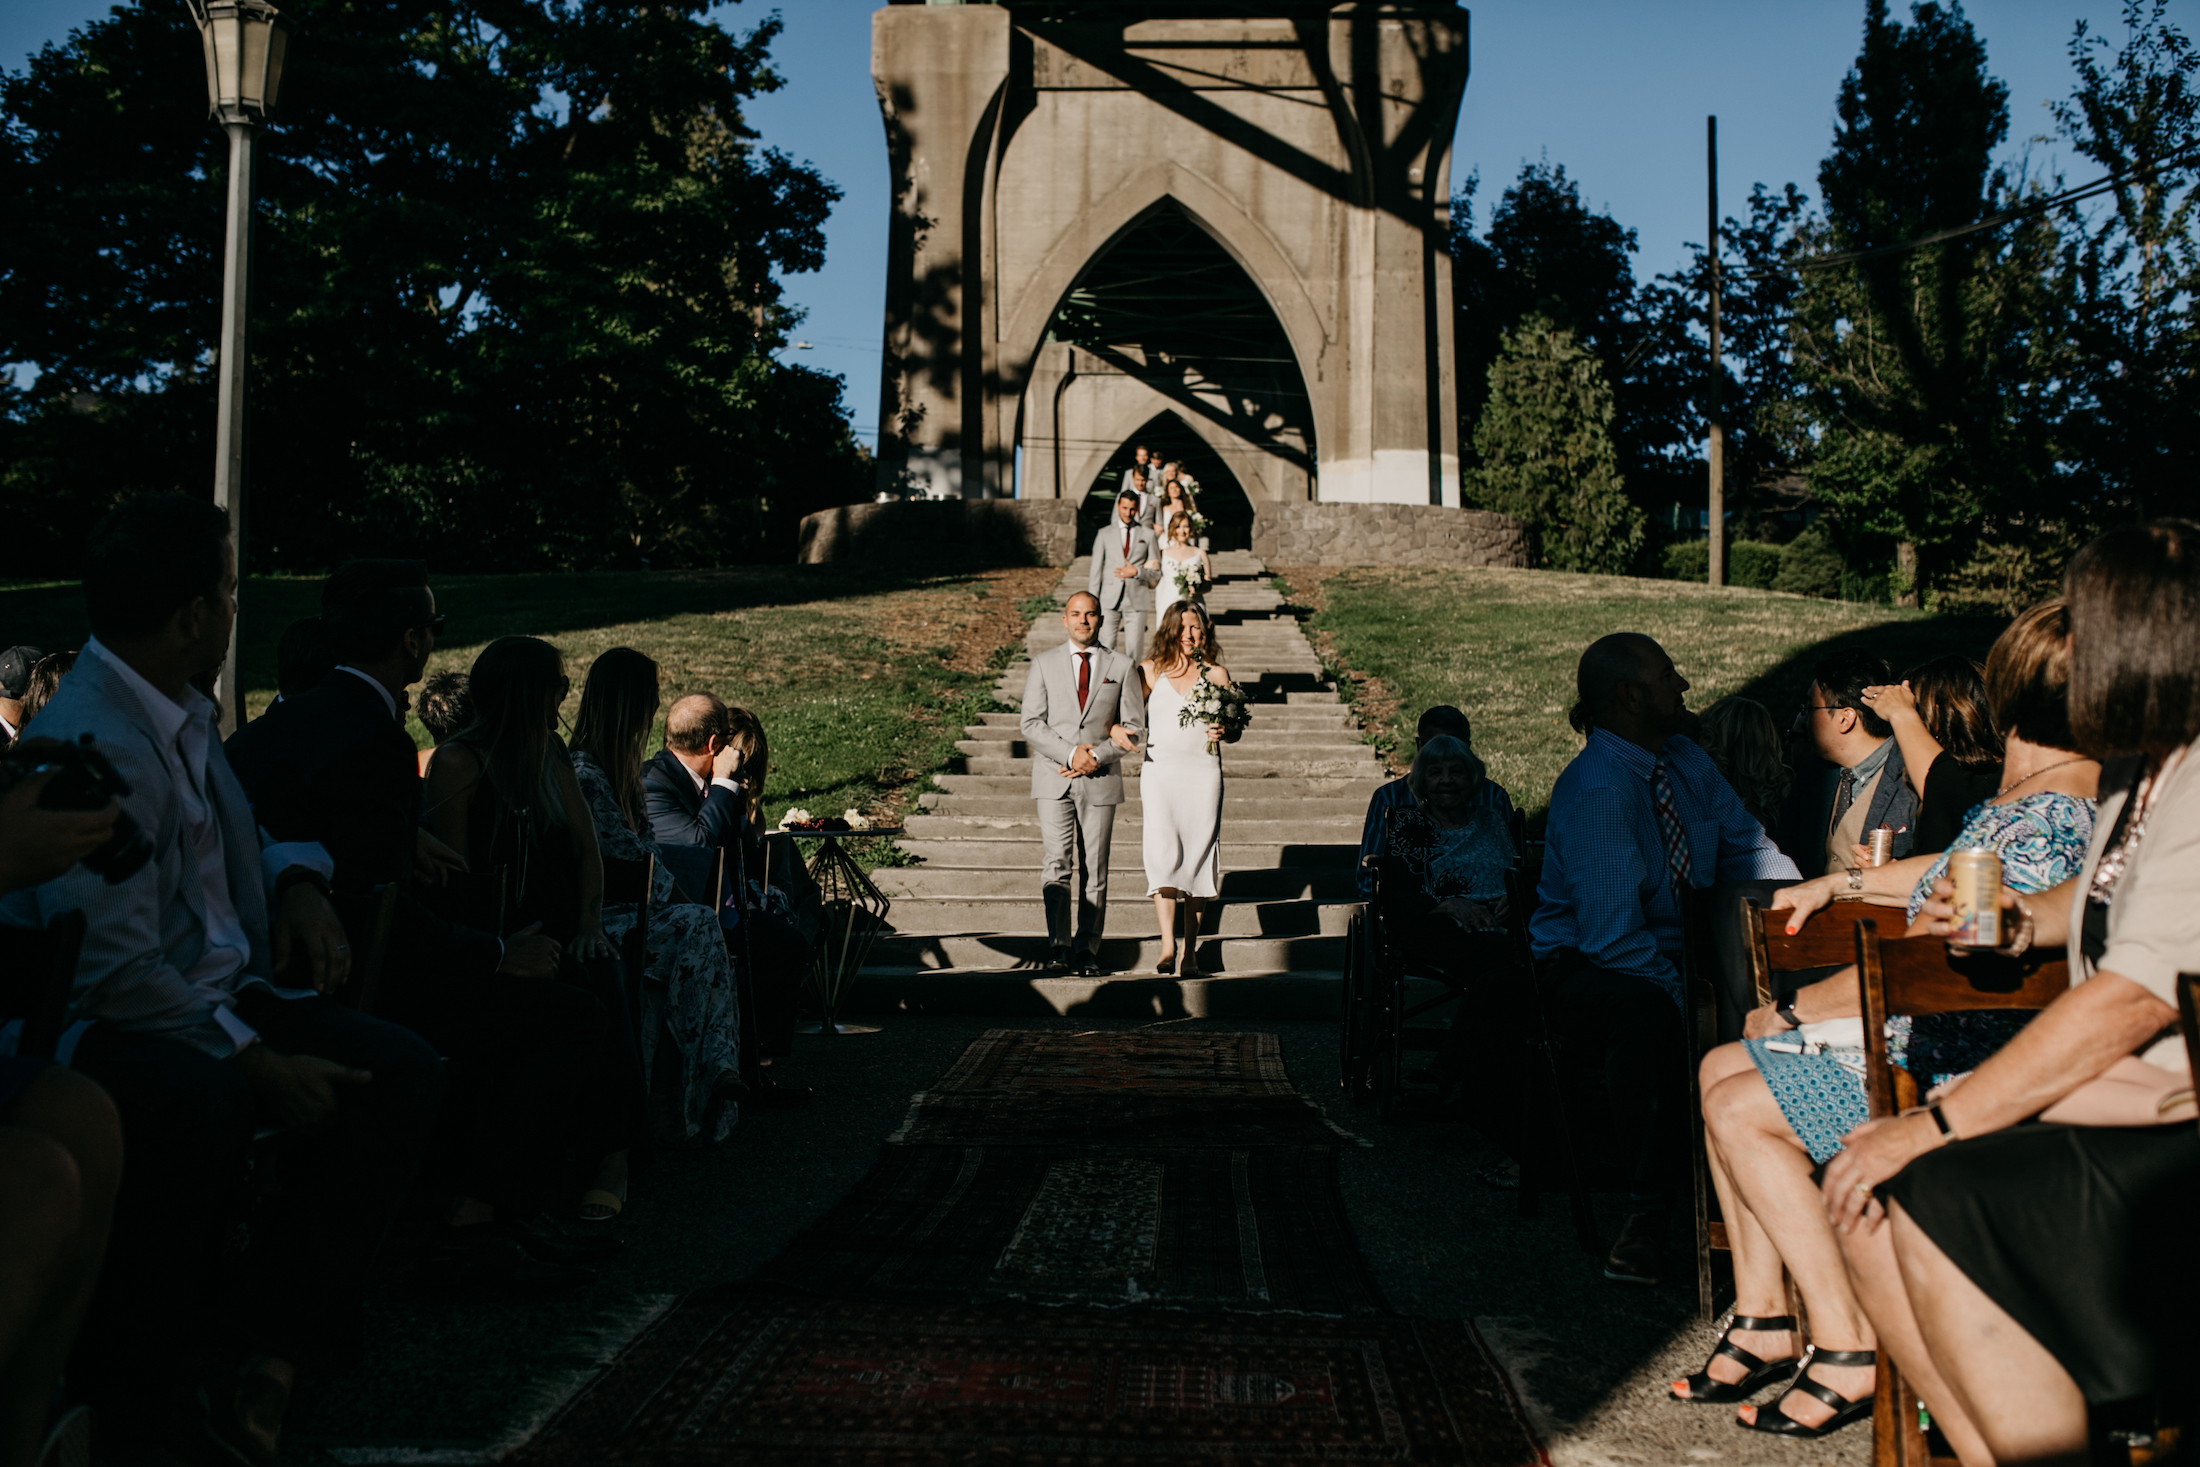 cathedral-park-portland-wedding-photographer-baker-building-wedding396.jpg